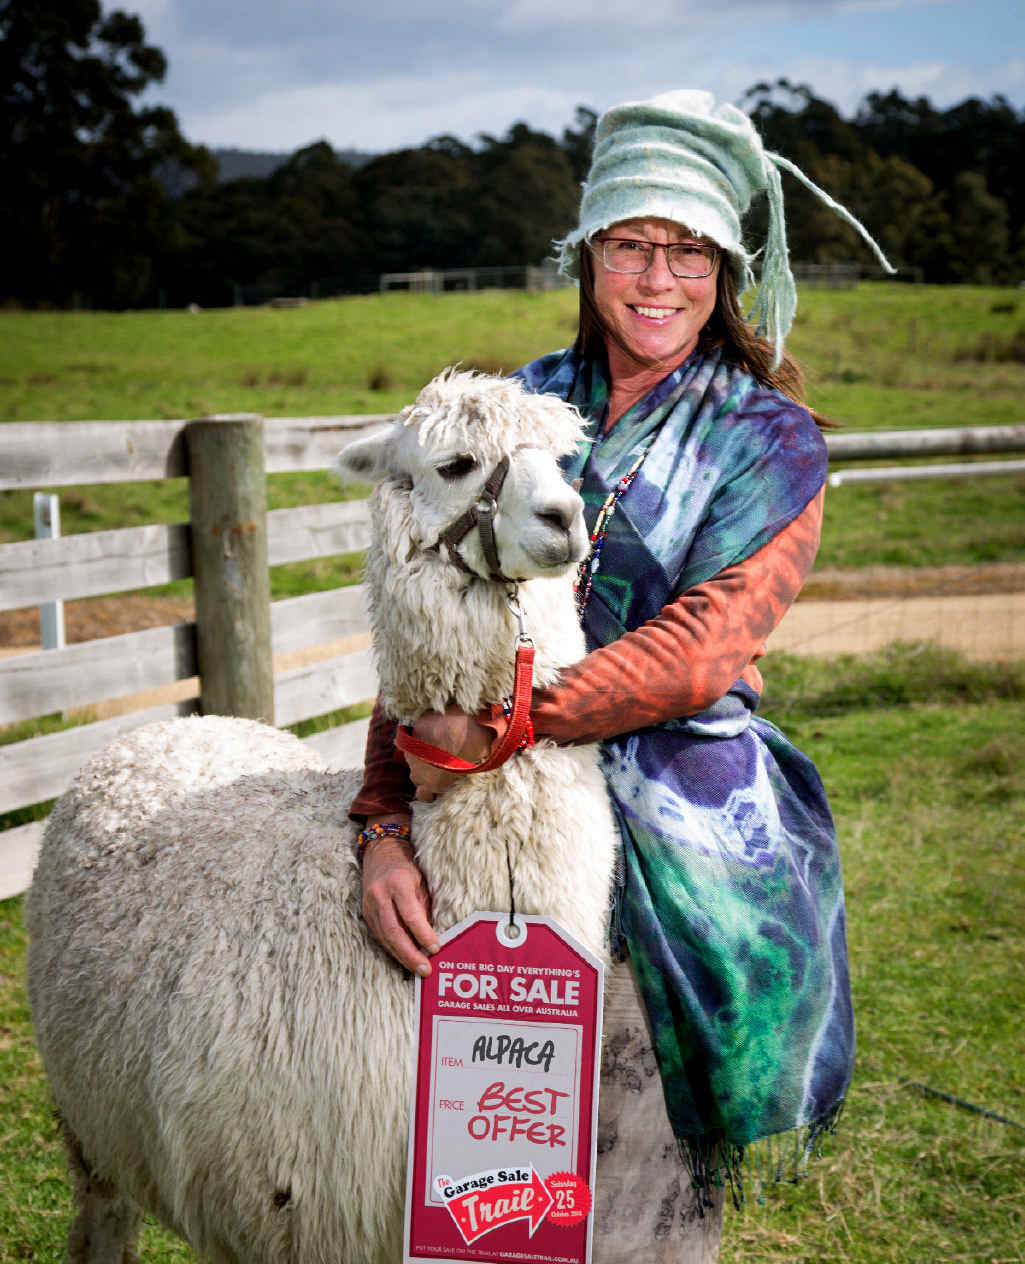 You might not have a cute alpaca for sale like Sally McDonald last year, but it's likely that you have lots of clutter you'd like to lose in the 2015 Garage Sale Trail.